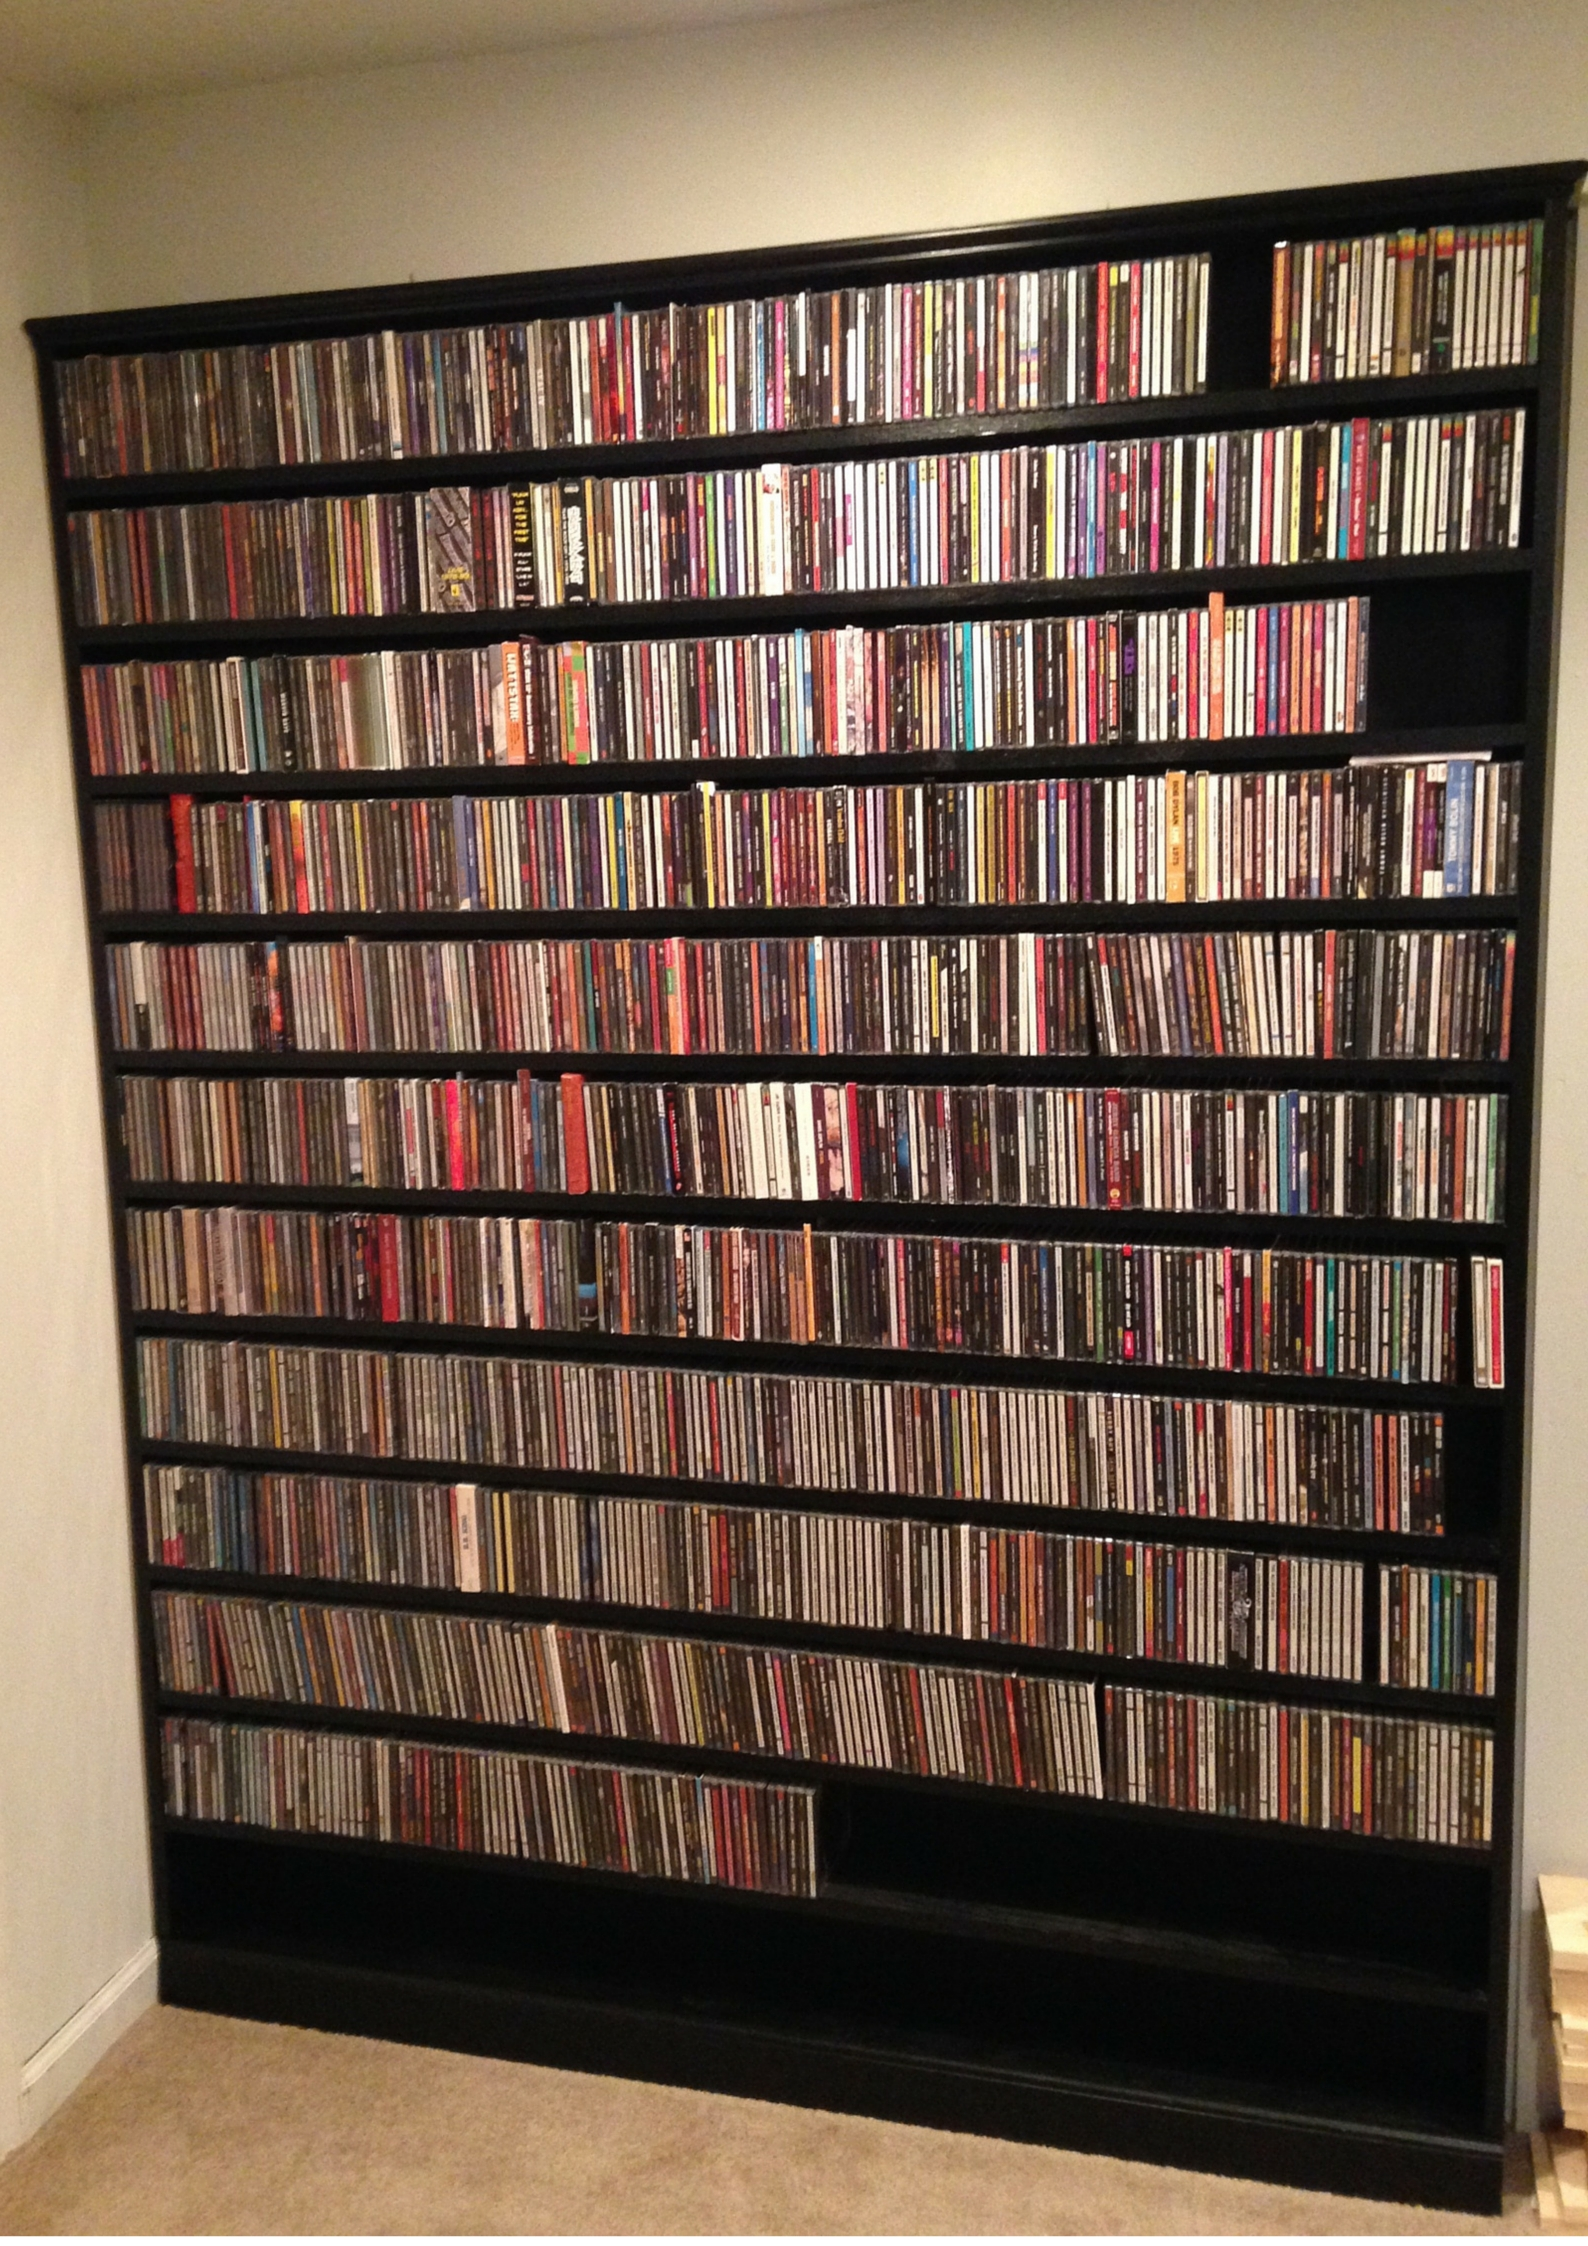 Extended Shelf Life Diy Cd Storage For The Serious Music Throughout Bespoke Cd Storage (#8 of 15)